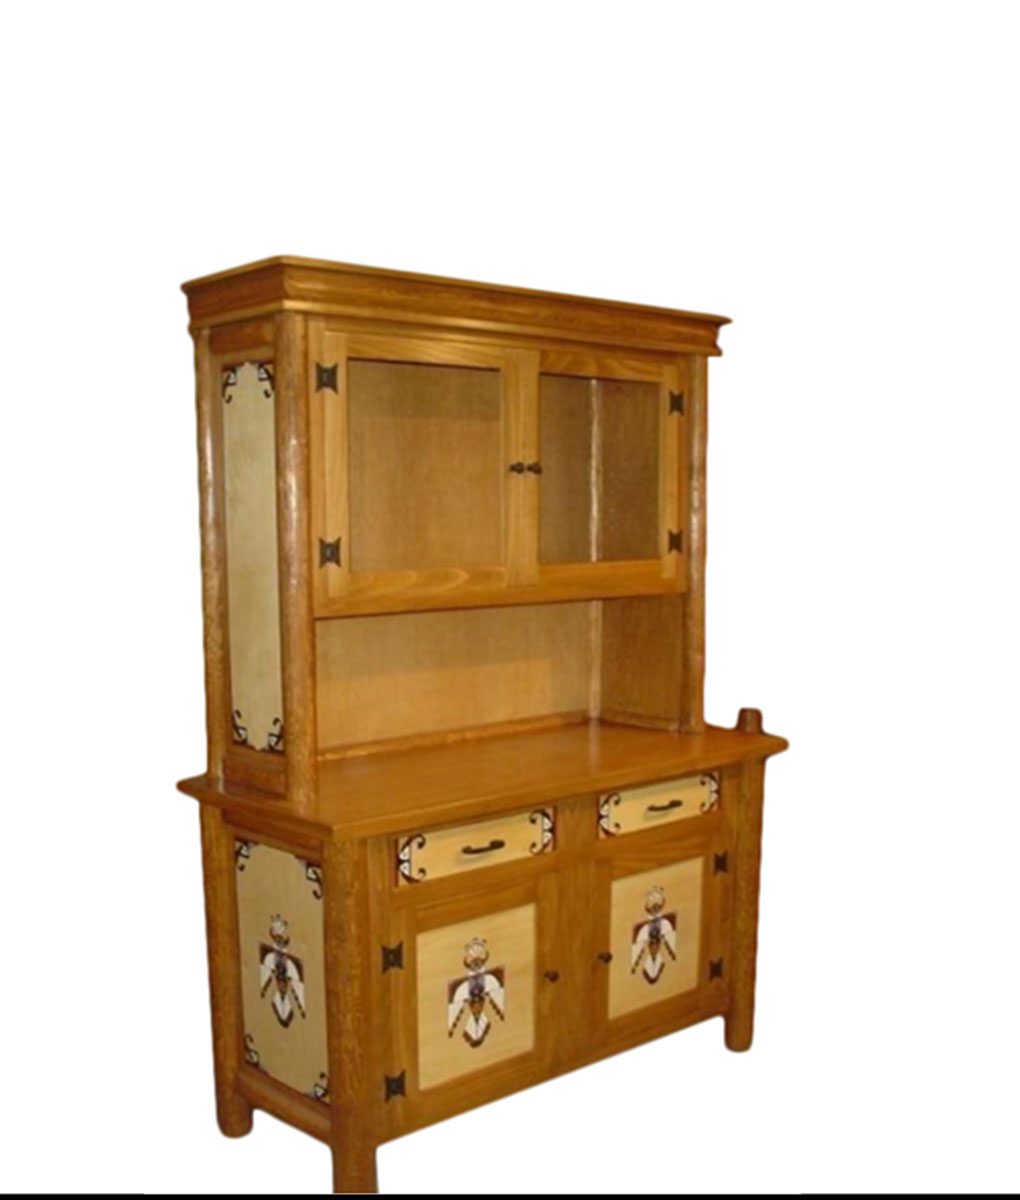 Molesworth thunderbird buffet and hutch rustic artistry for Native american furniture designs